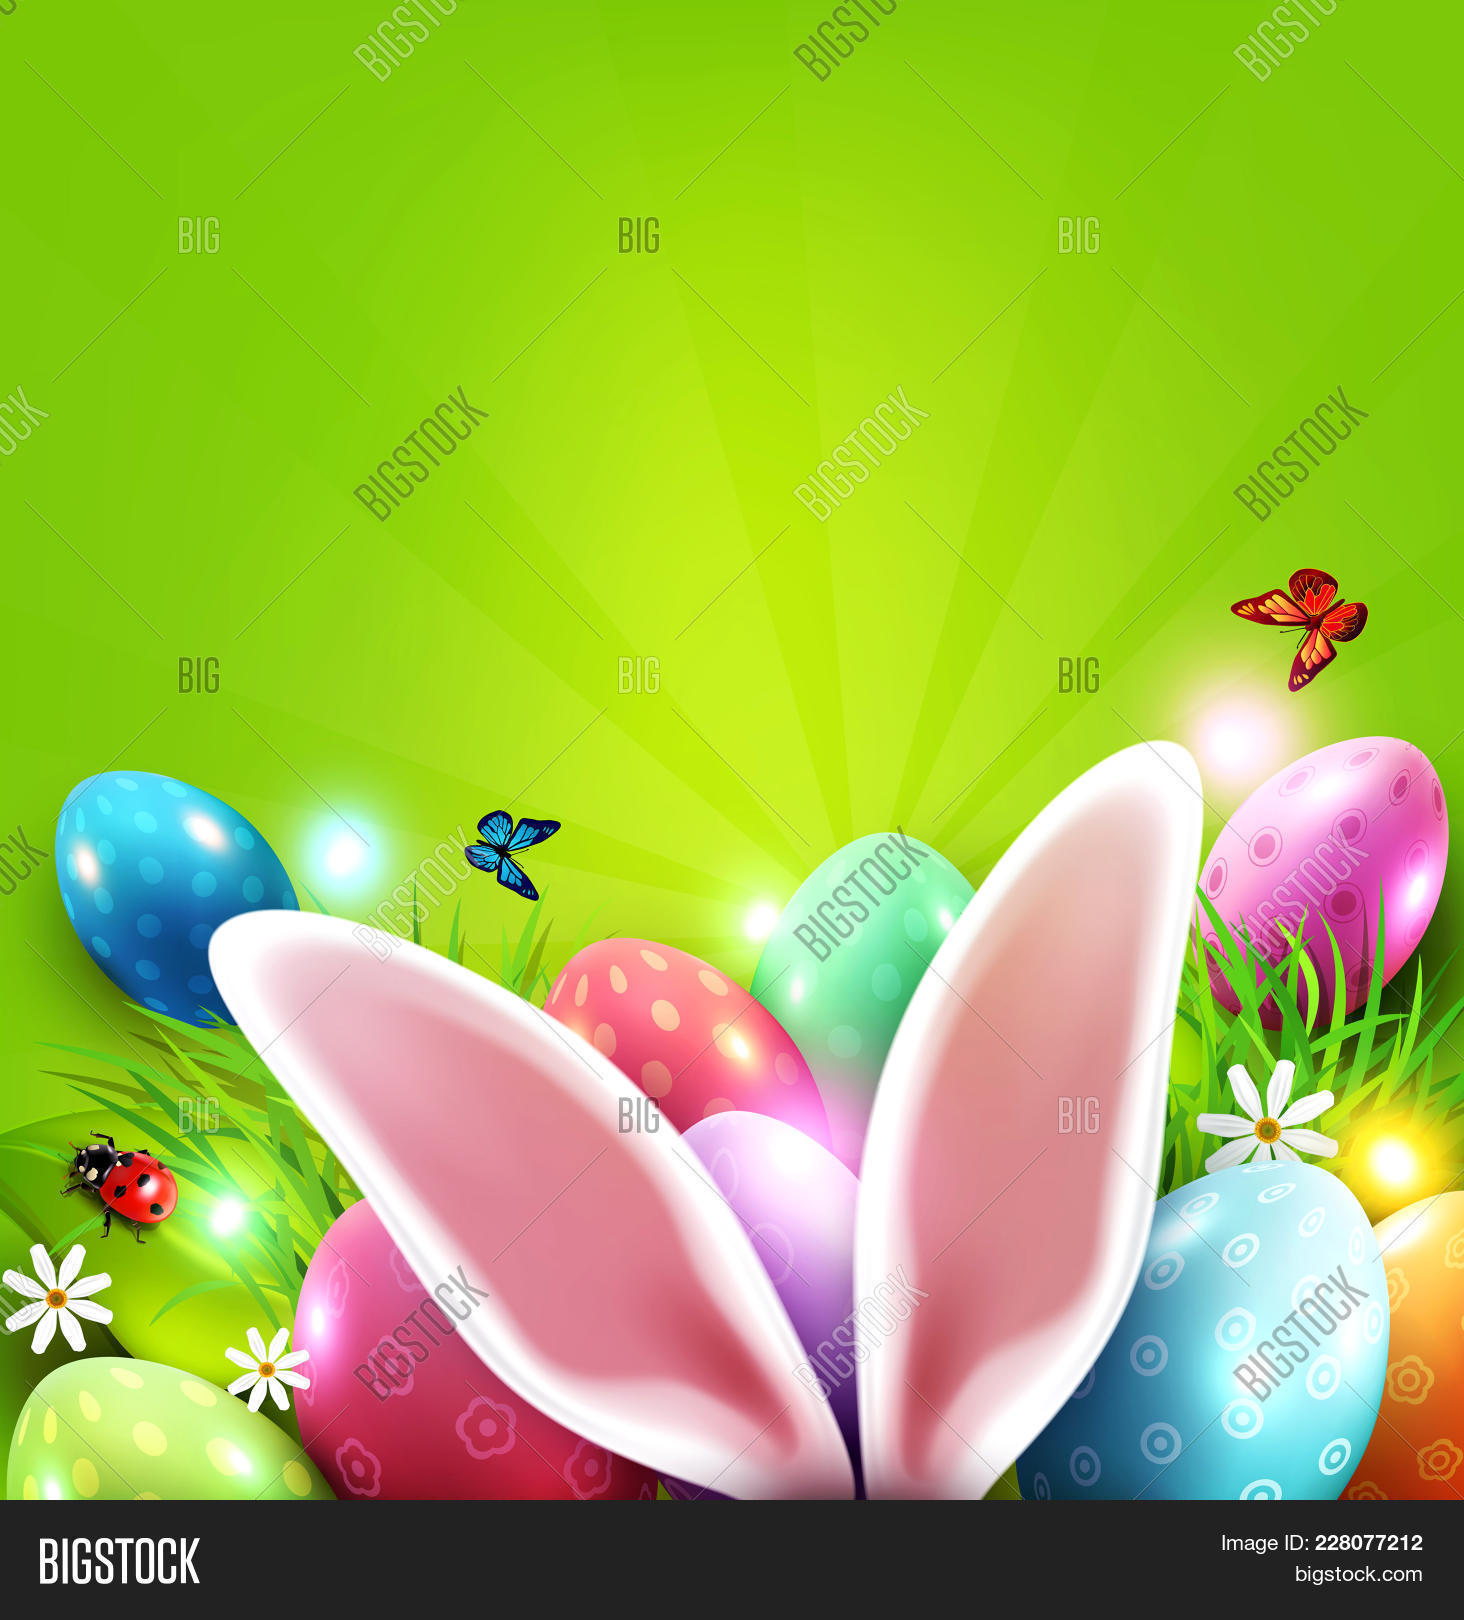 Easter Greeting Card Image Photo Free Trial Bigstock